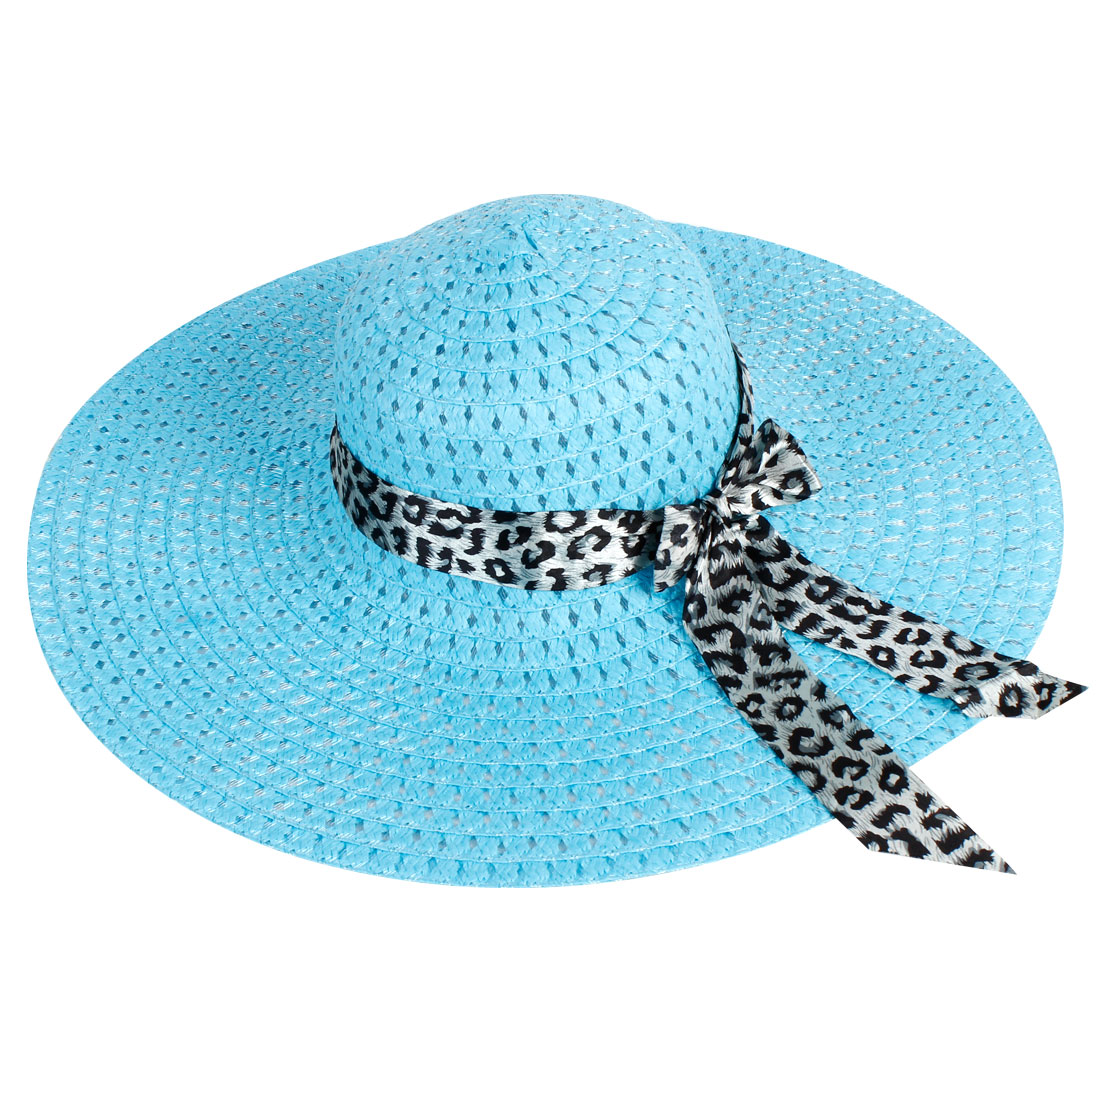 Woman 13.5cm Wide Brim Bowknot Accent Plastic Stitching Summer Beach Hat Blue